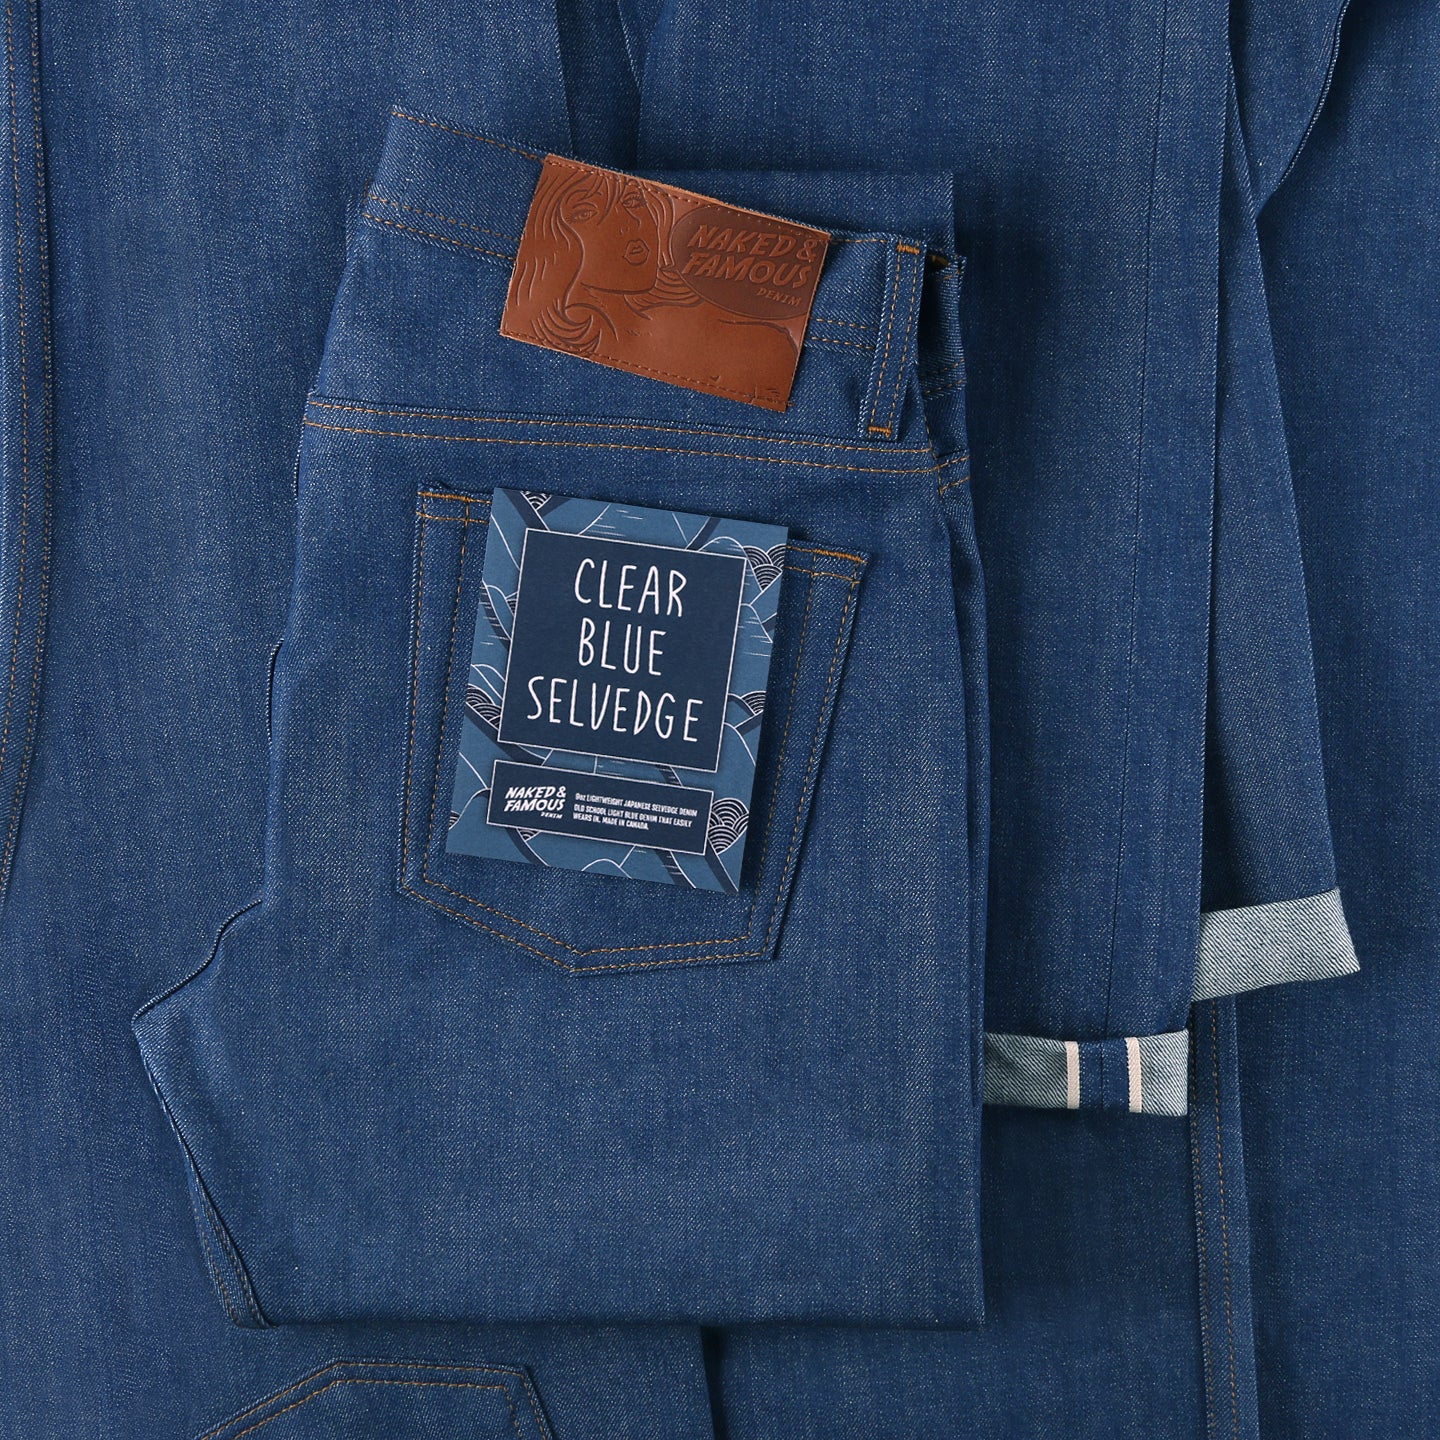 Clear Blue Selvedge by Naked & Famous Denim | Tate + Yoko